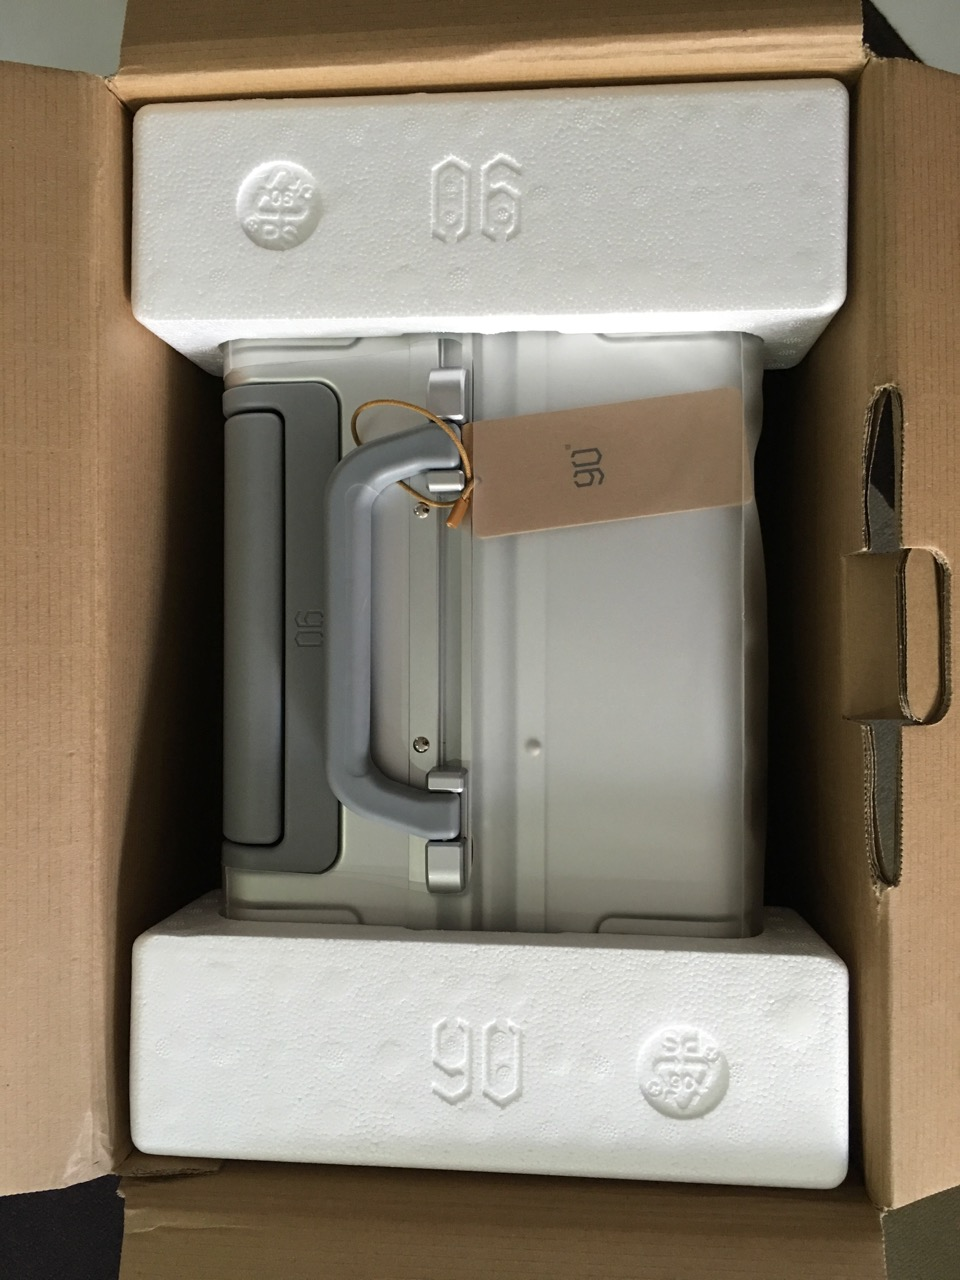 xiaomi-mi-90-smart-metal-luggage-suitcase-unboxing